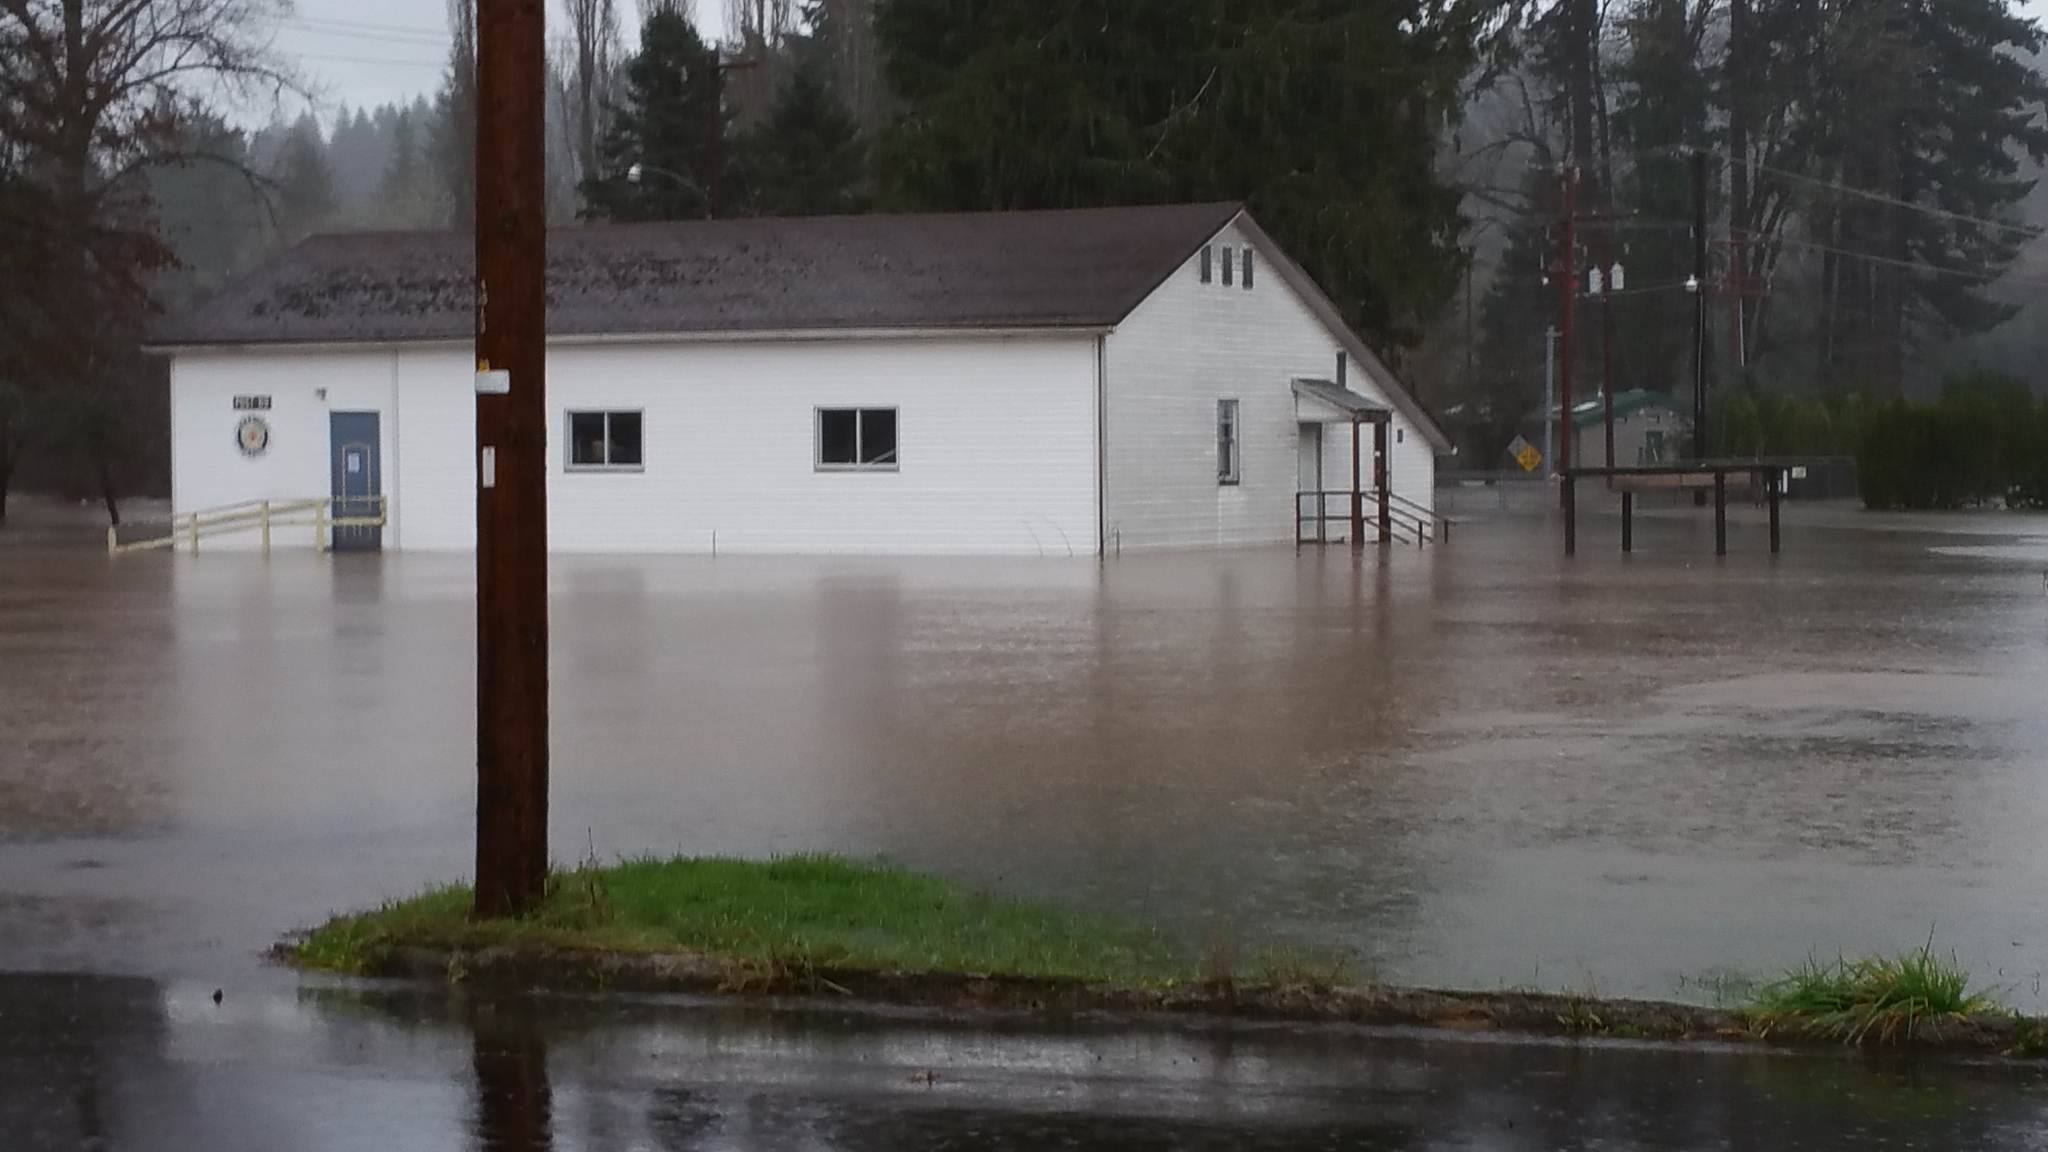 Vernonia Legion Hall/Food Bank